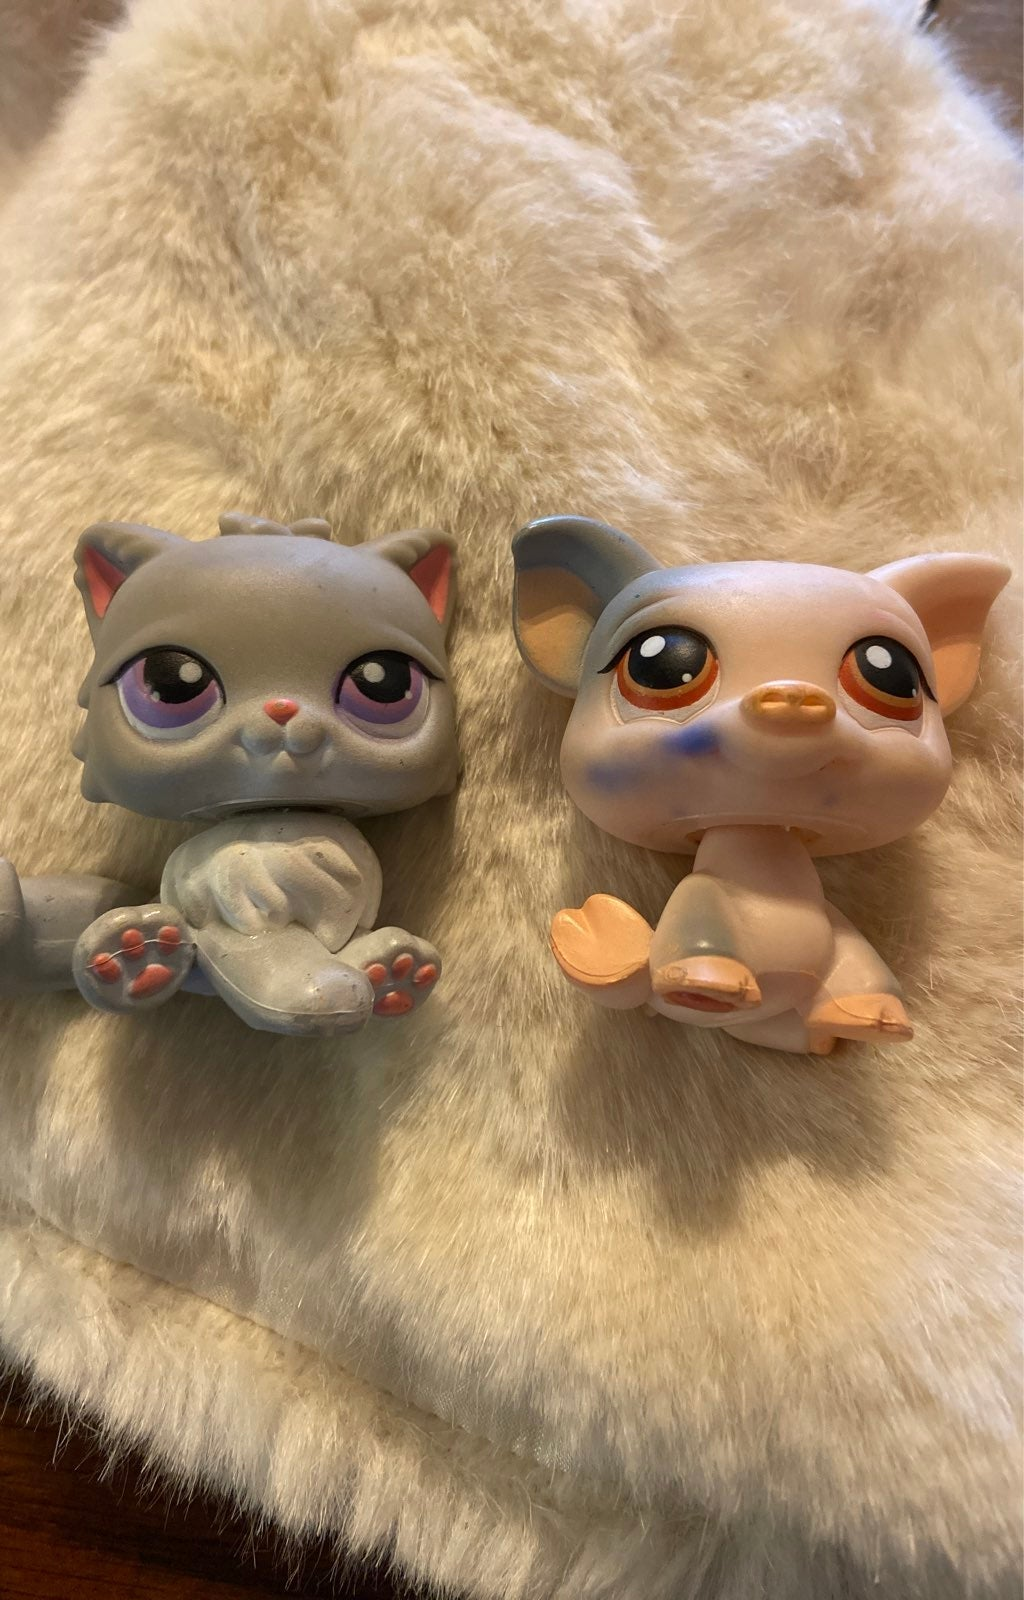 LPS Cat 263 and Pig 259